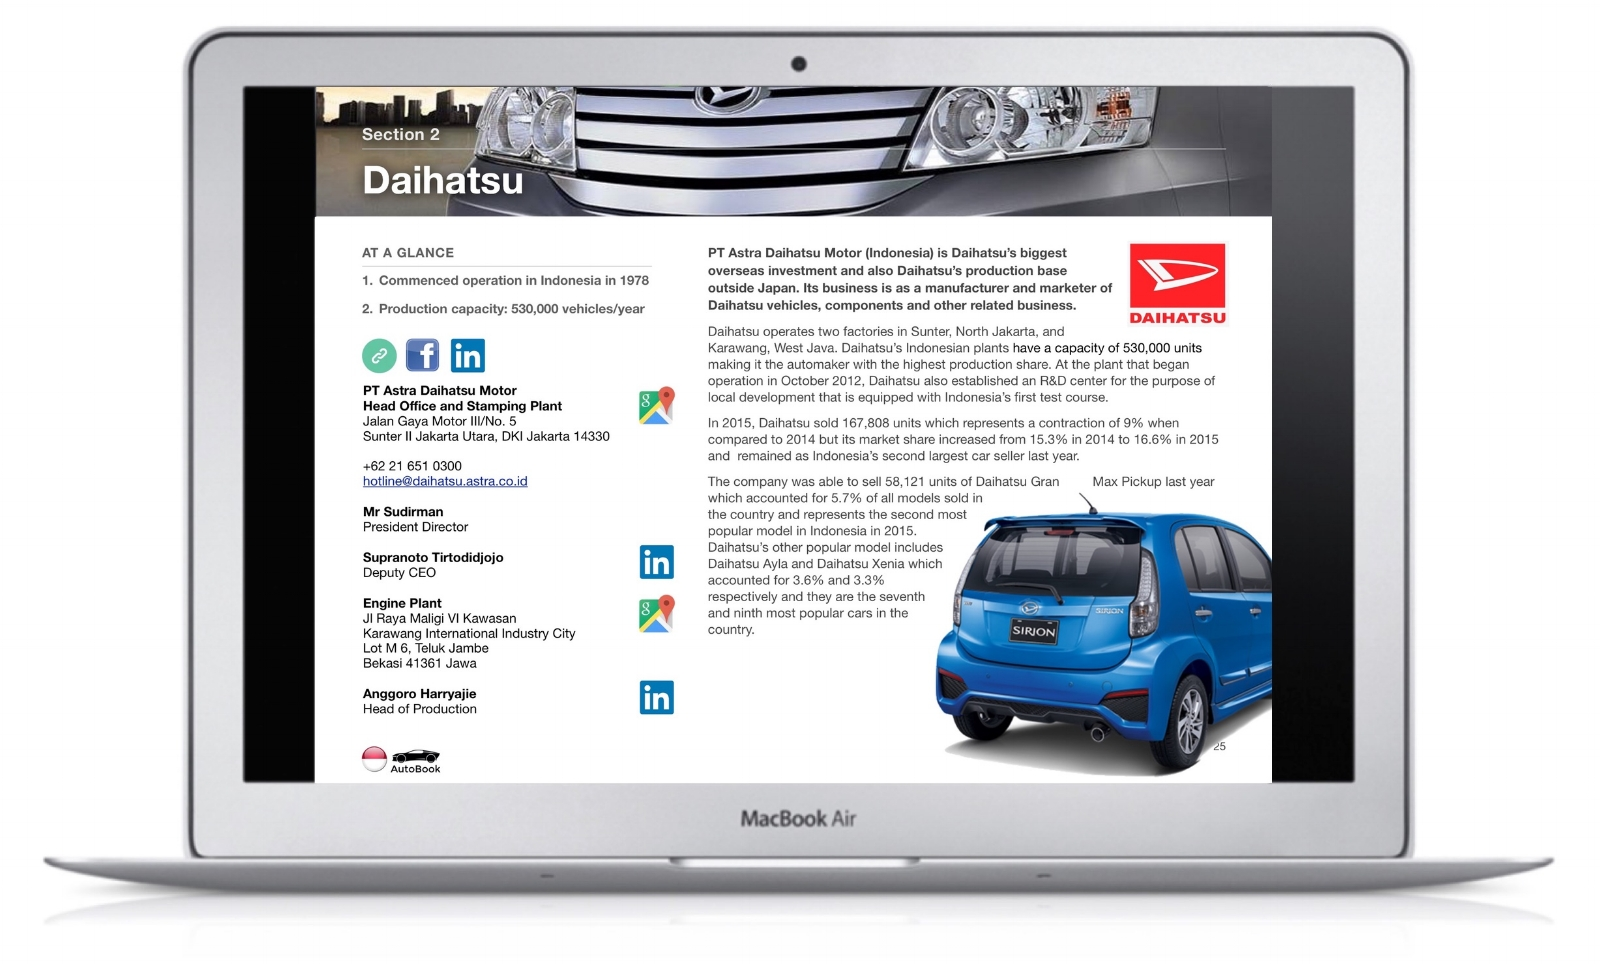 The Indonesia AutoBook includes company profiles of OEM car makers, Multinationals and Indonesian automotive parts suppliers as well as organizations, media and exhibitions.